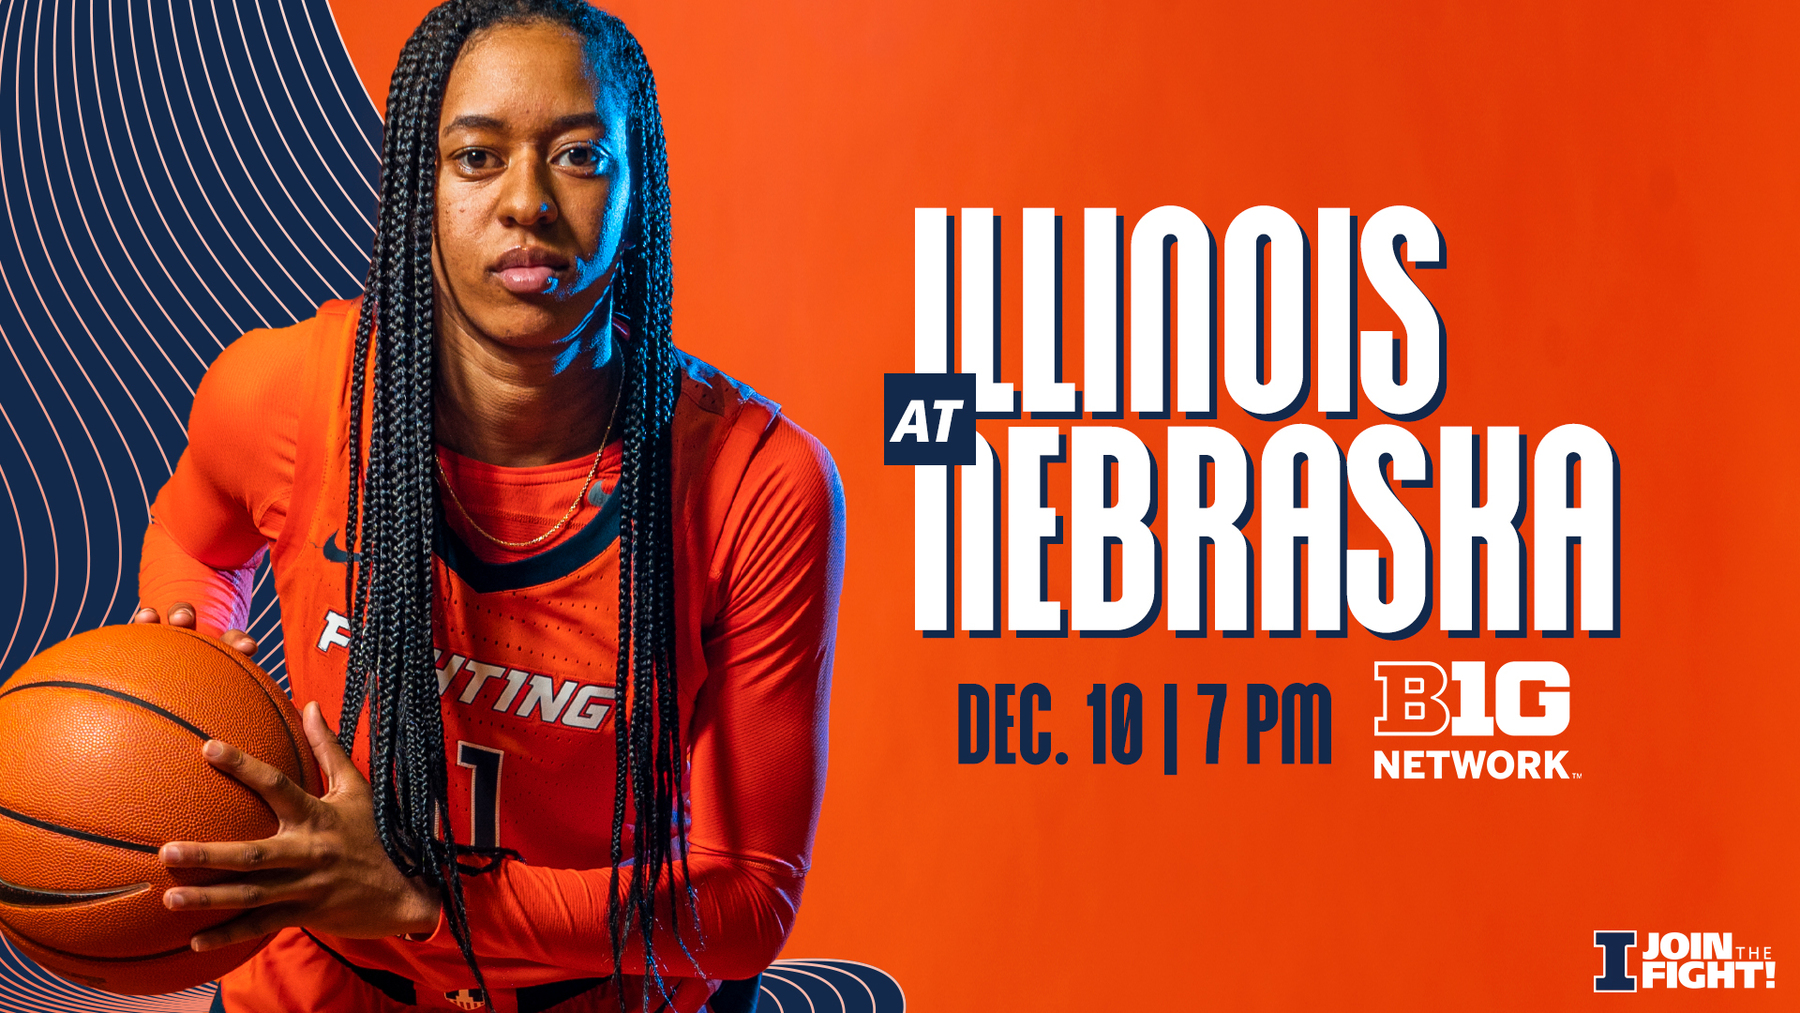 Guard Jada Peebles featured on graphic for Illinois vs. Nebraska game